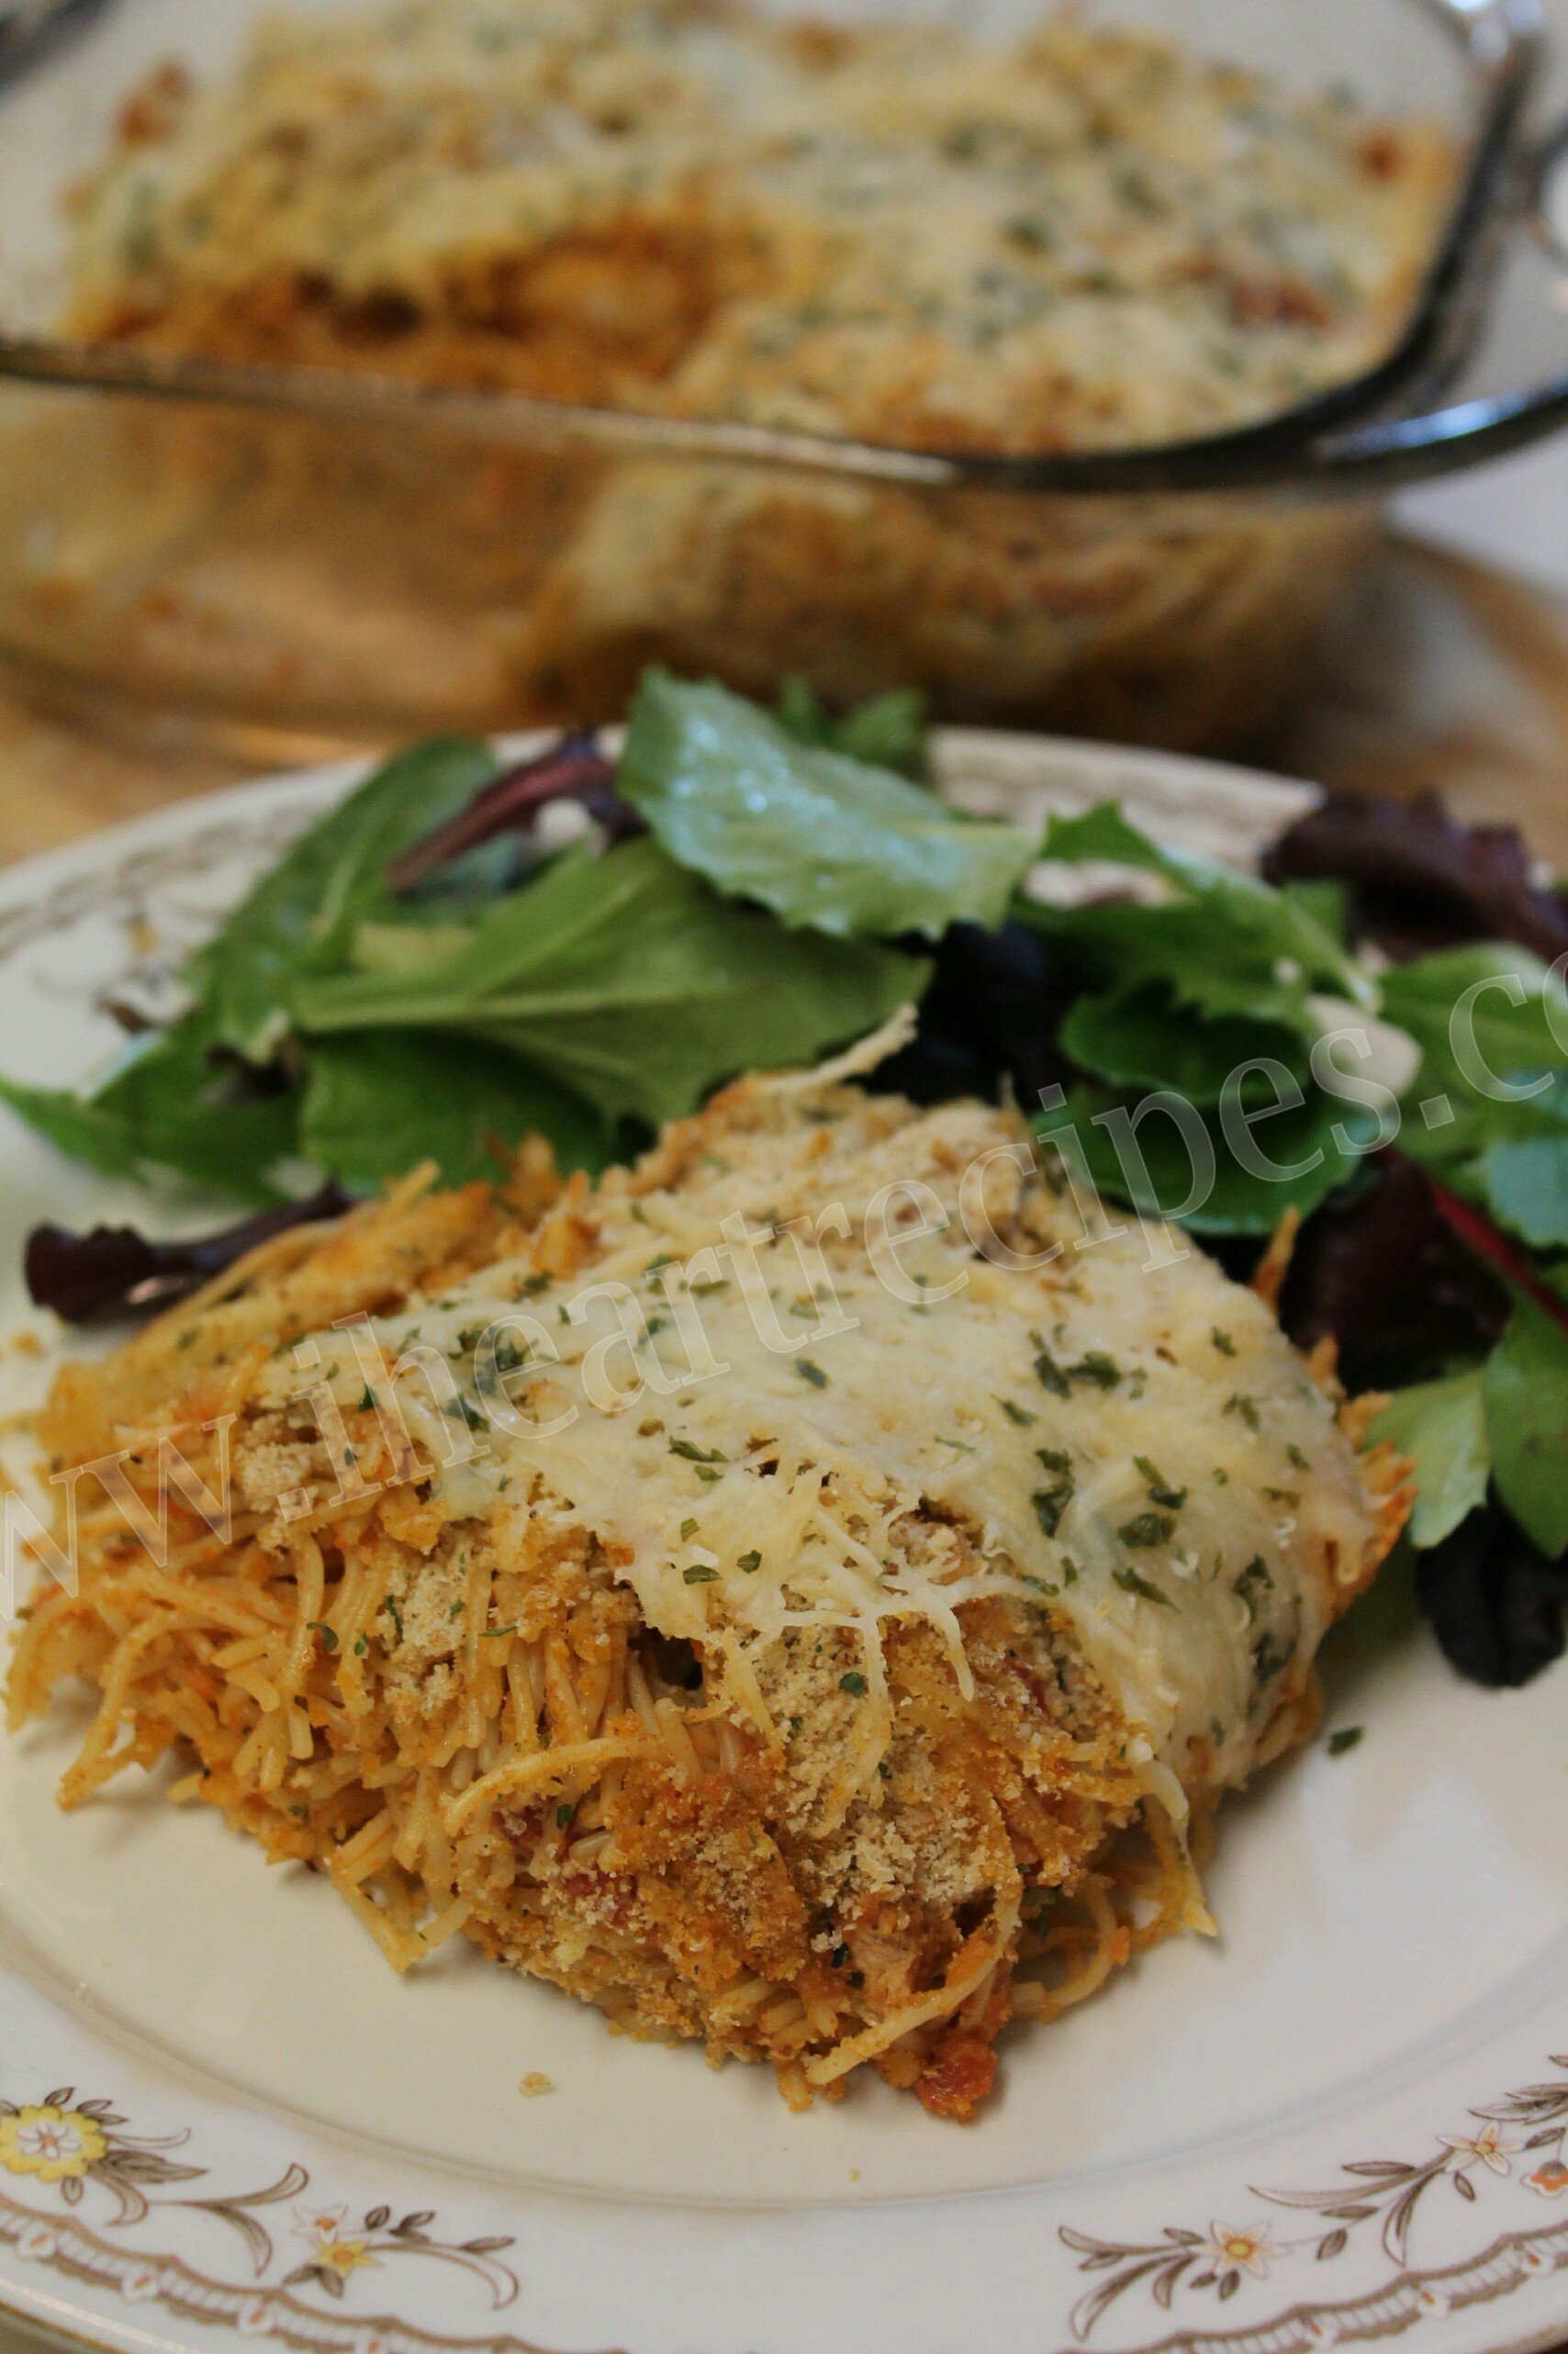 Serve this chicken parmesan casserole with a side salad for a simple and delicious dinner